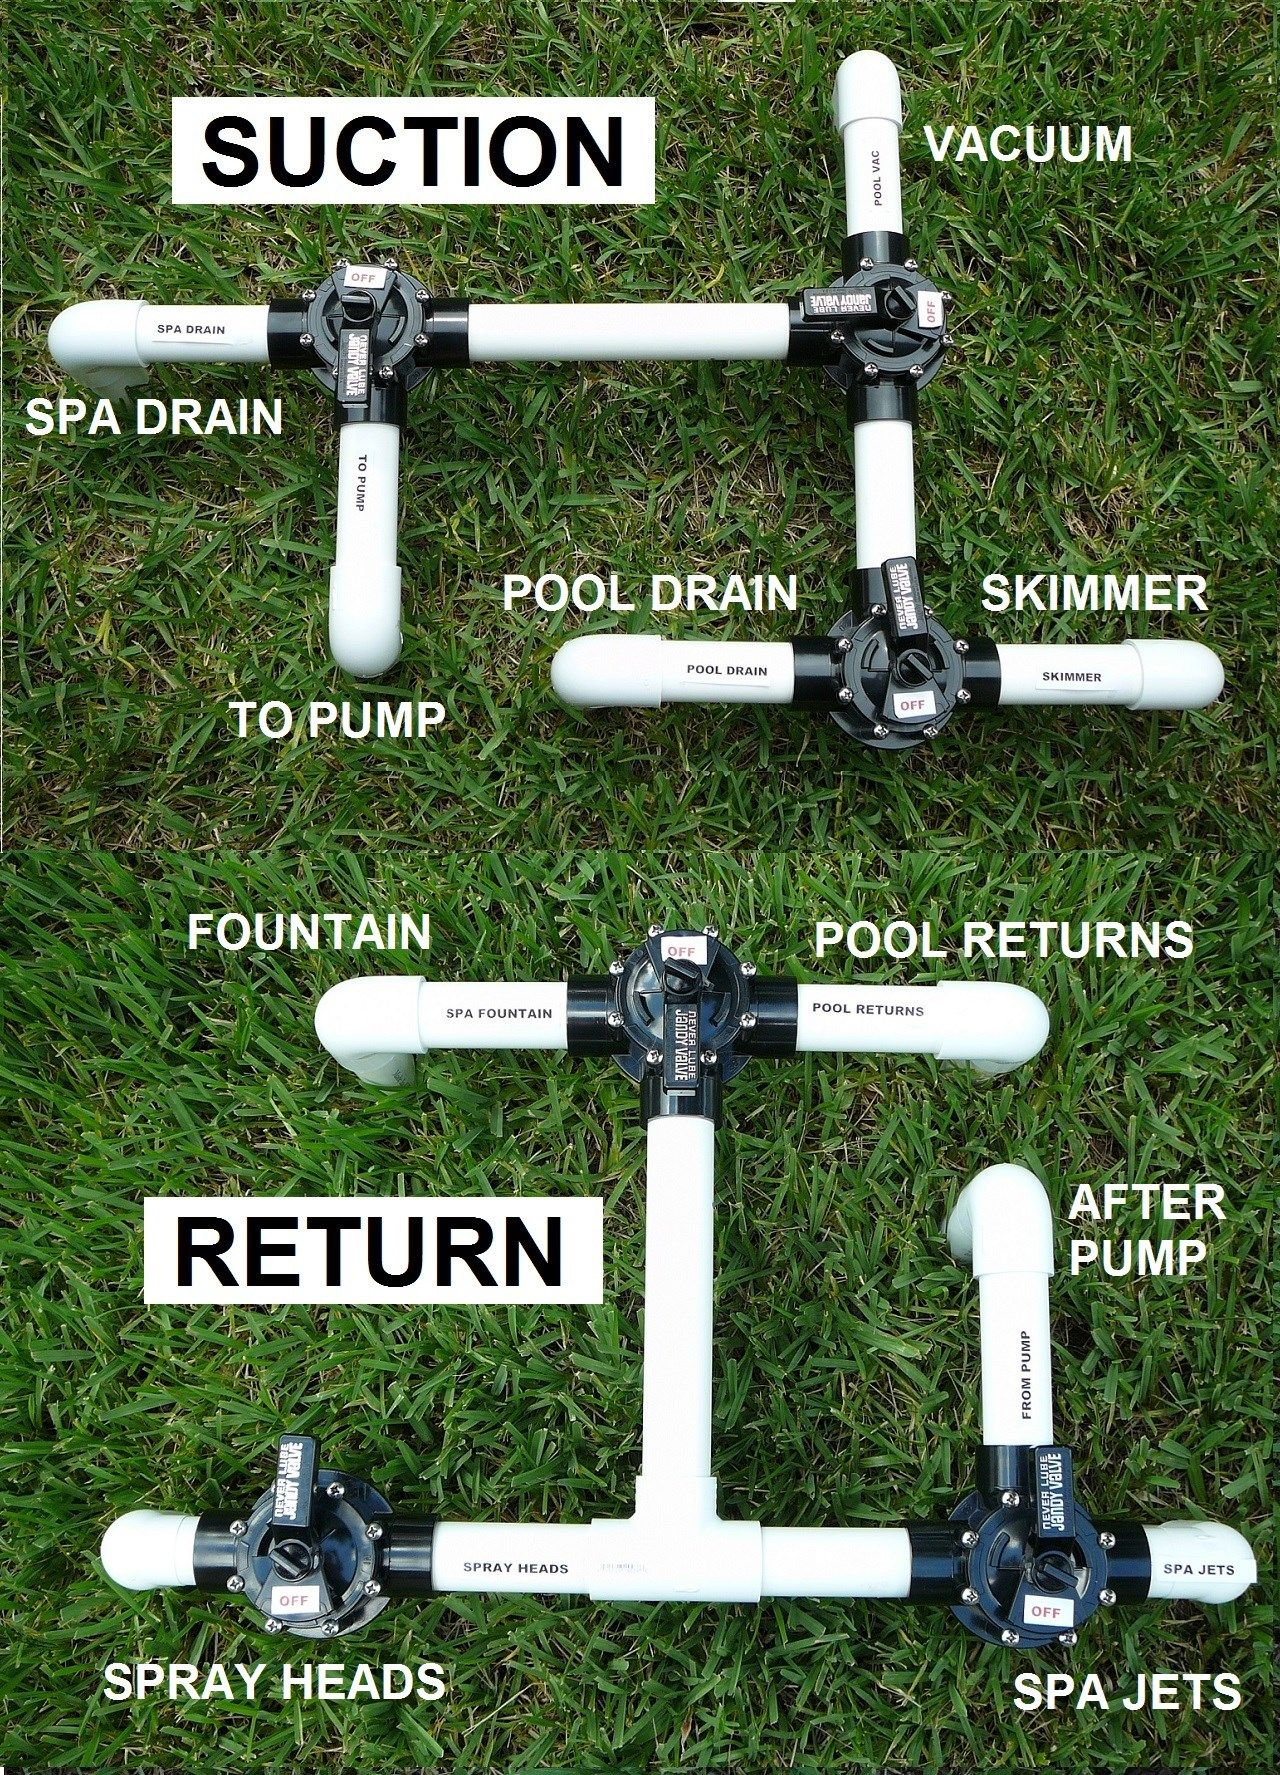 Plumbing Diagram For Pool Spa Jets In Pool Pump System